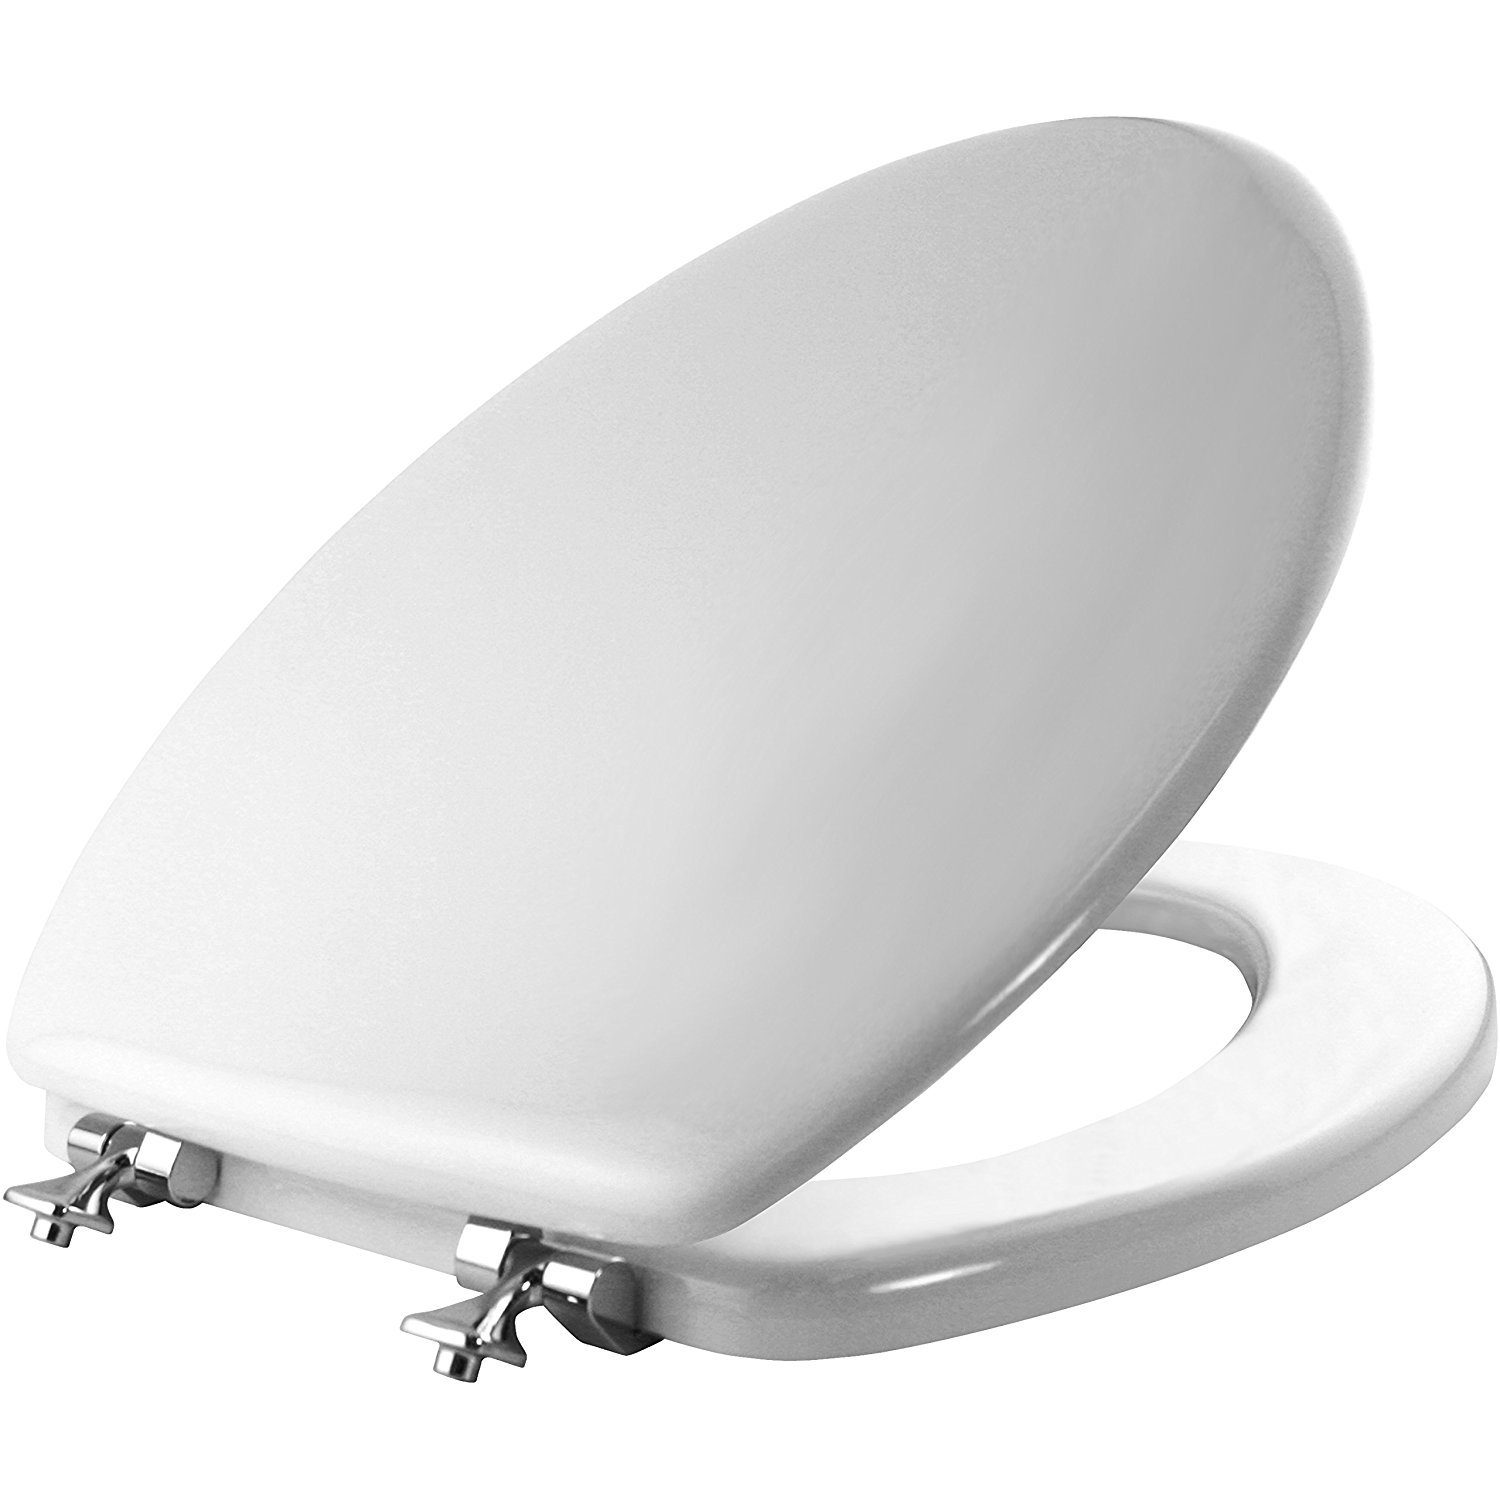 Mayfair Molded Wood Toilet Seat Featuring Sta Tite Seat Fastening